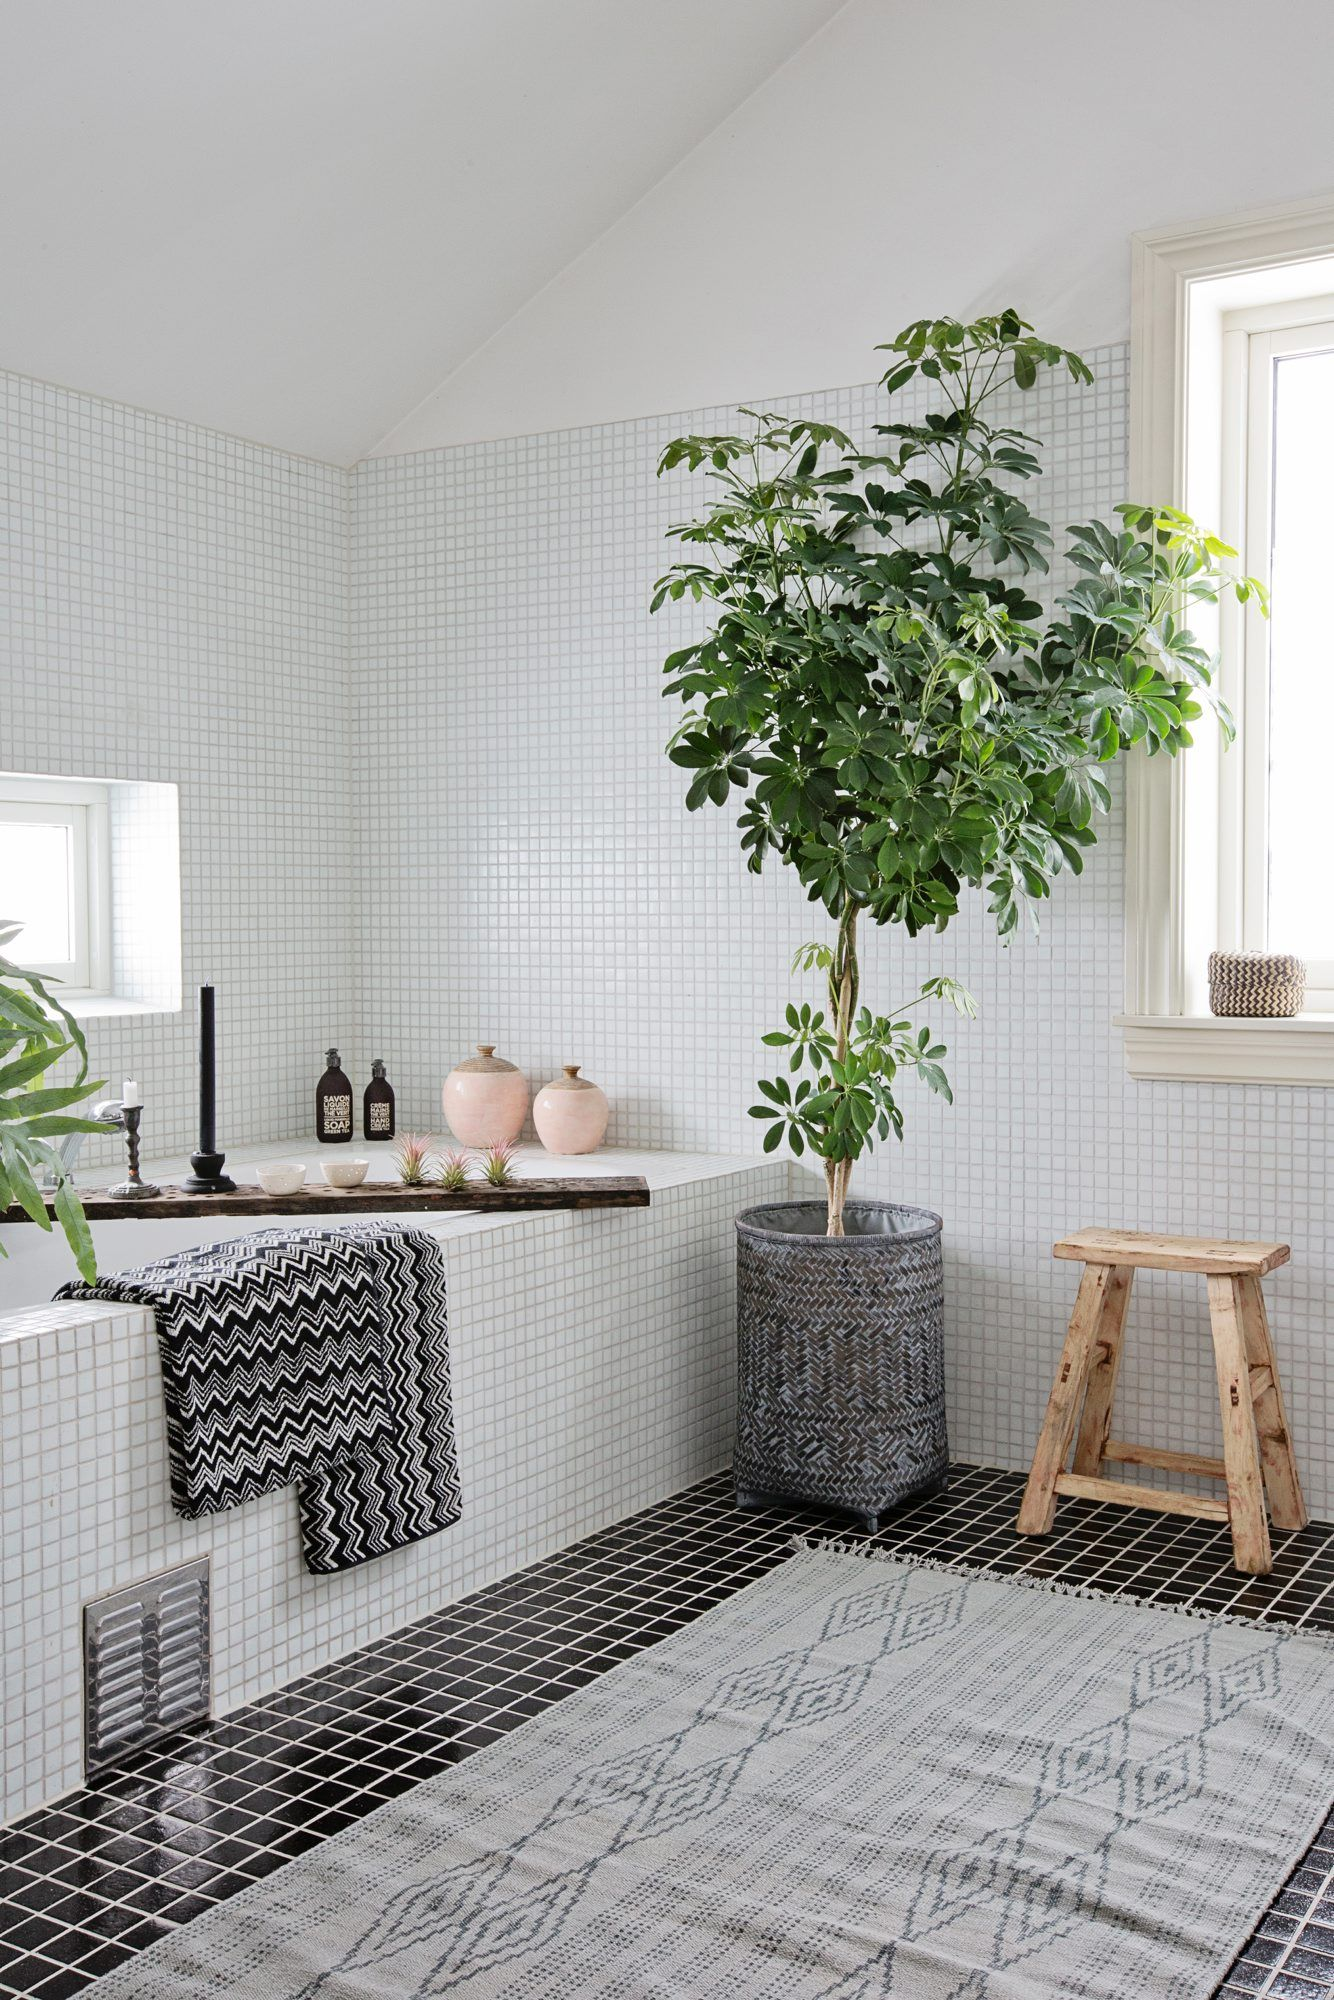 The Tile Look You Either Love, Or Love to Hate | Pinterest | Spa ...